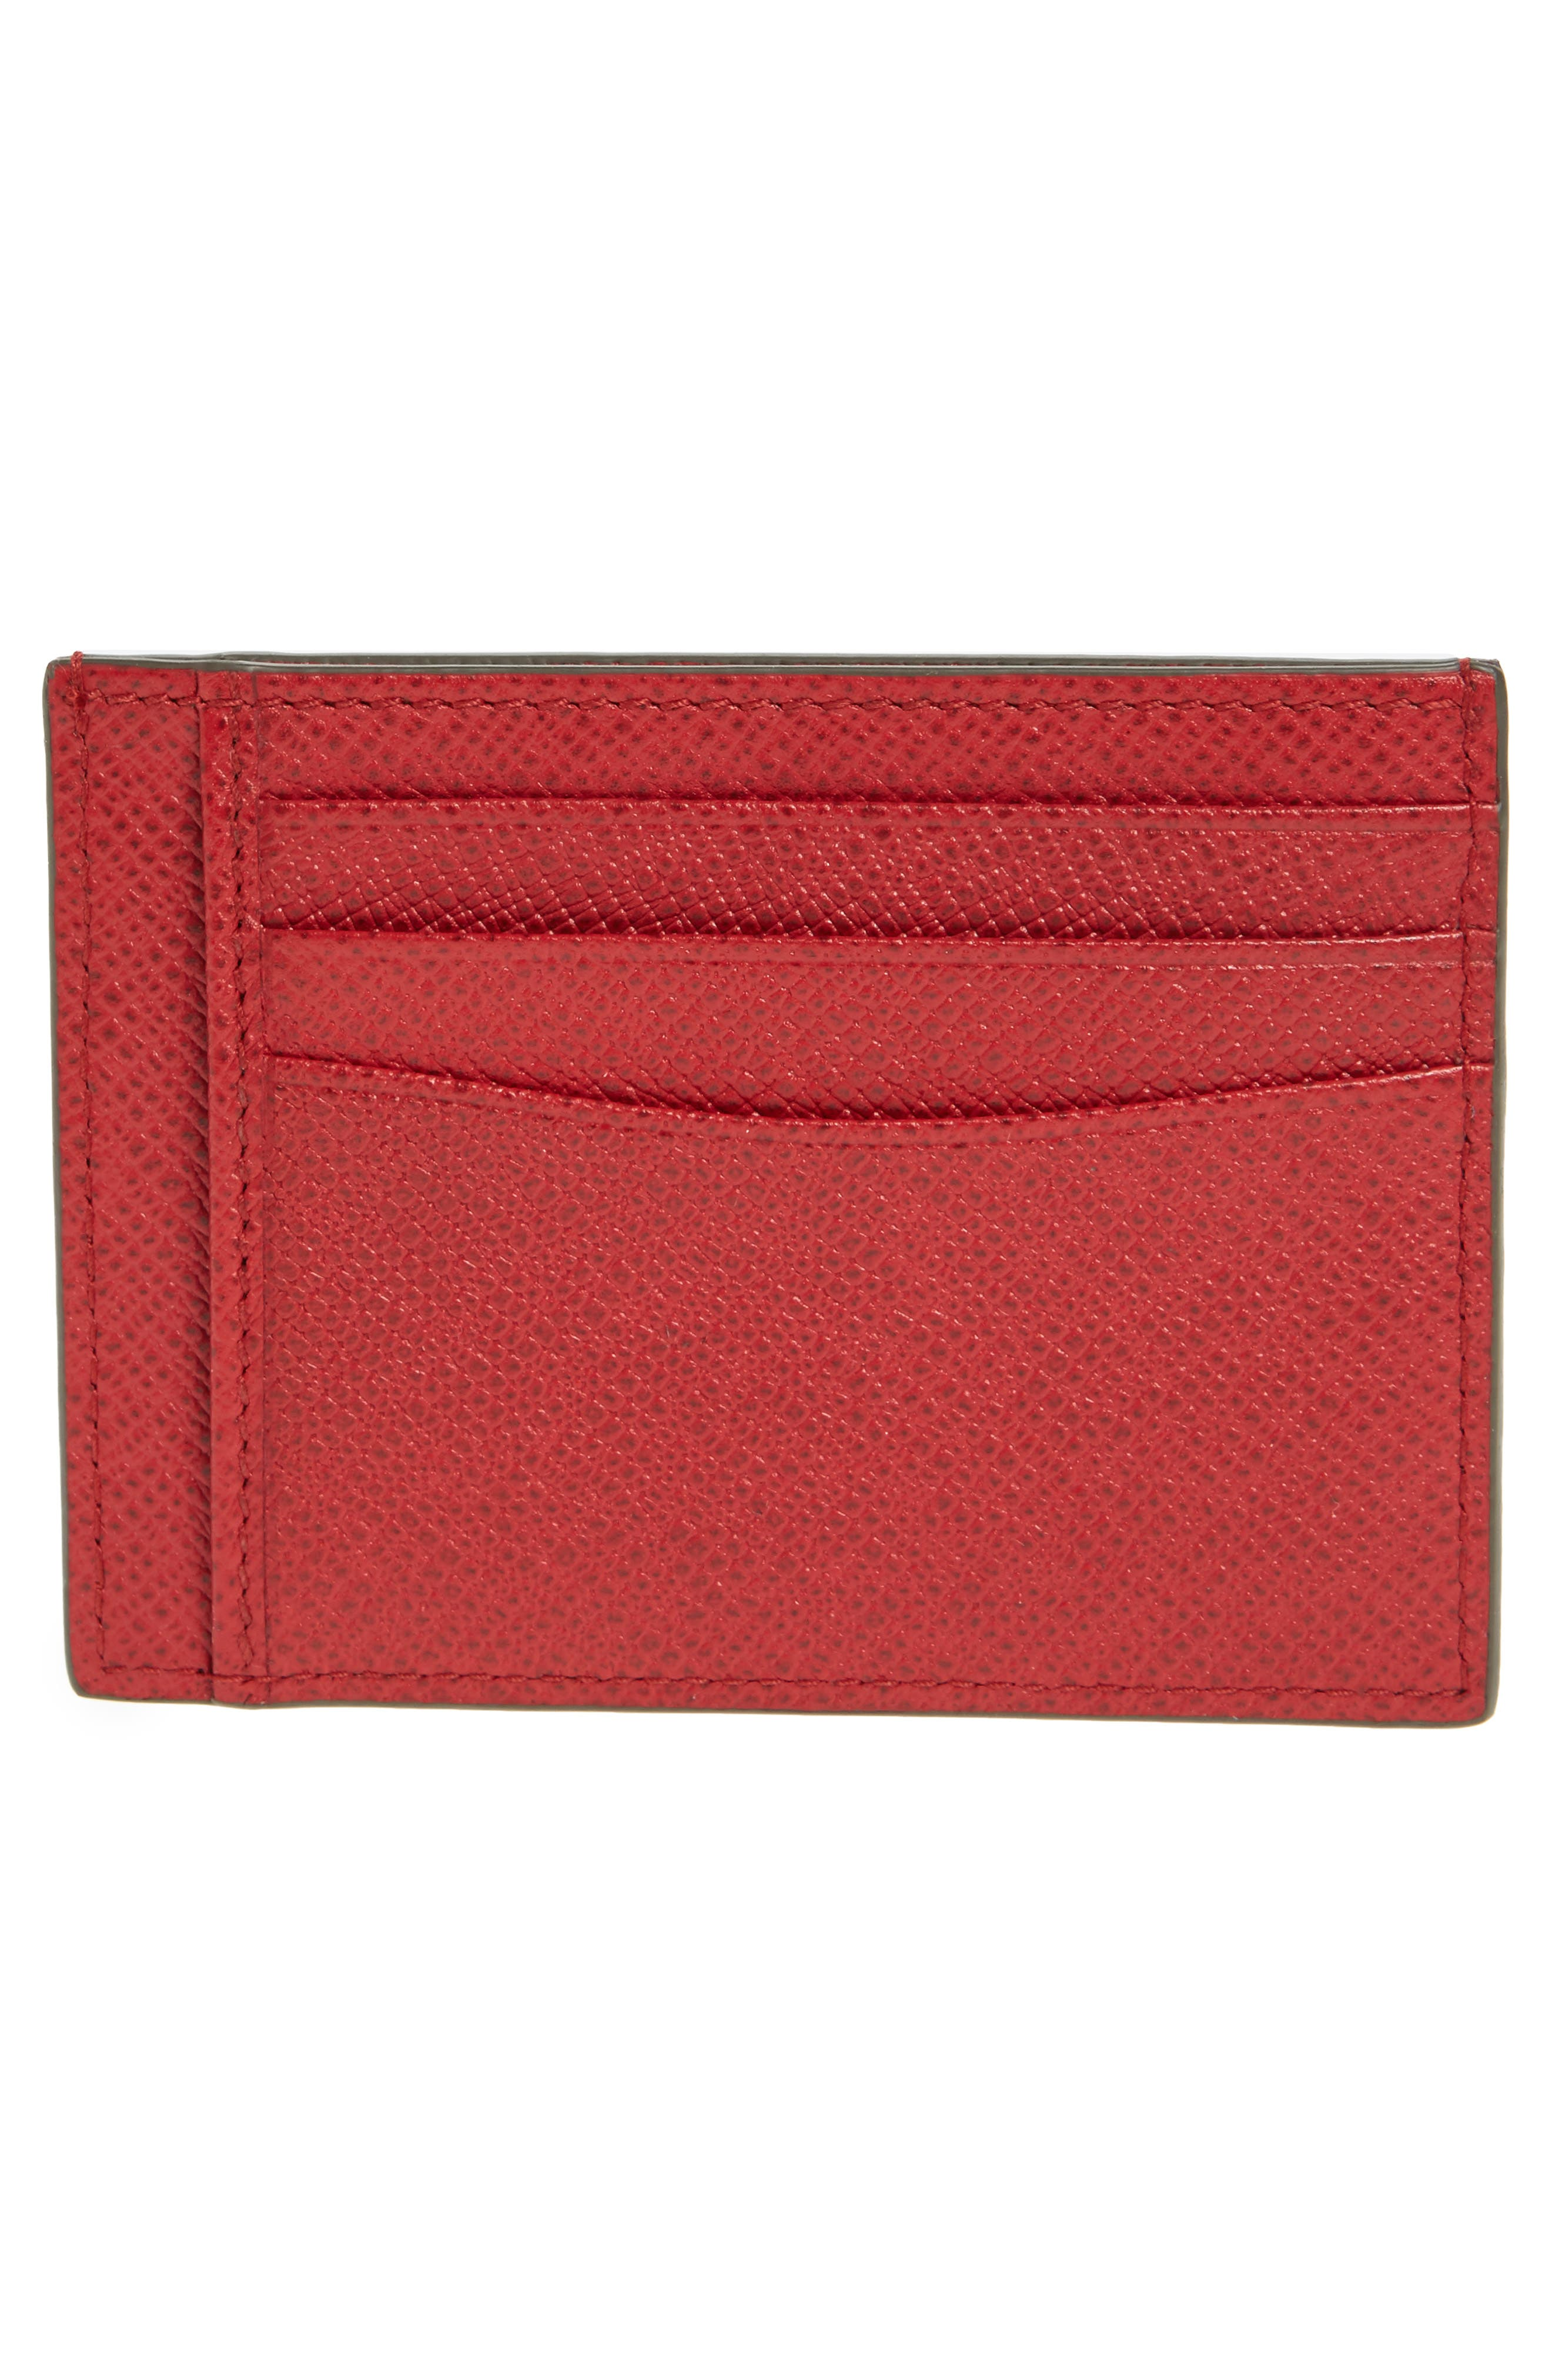 Signature Leather Card Case,                             Alternate thumbnail 2, color,                             MEDIUM RED